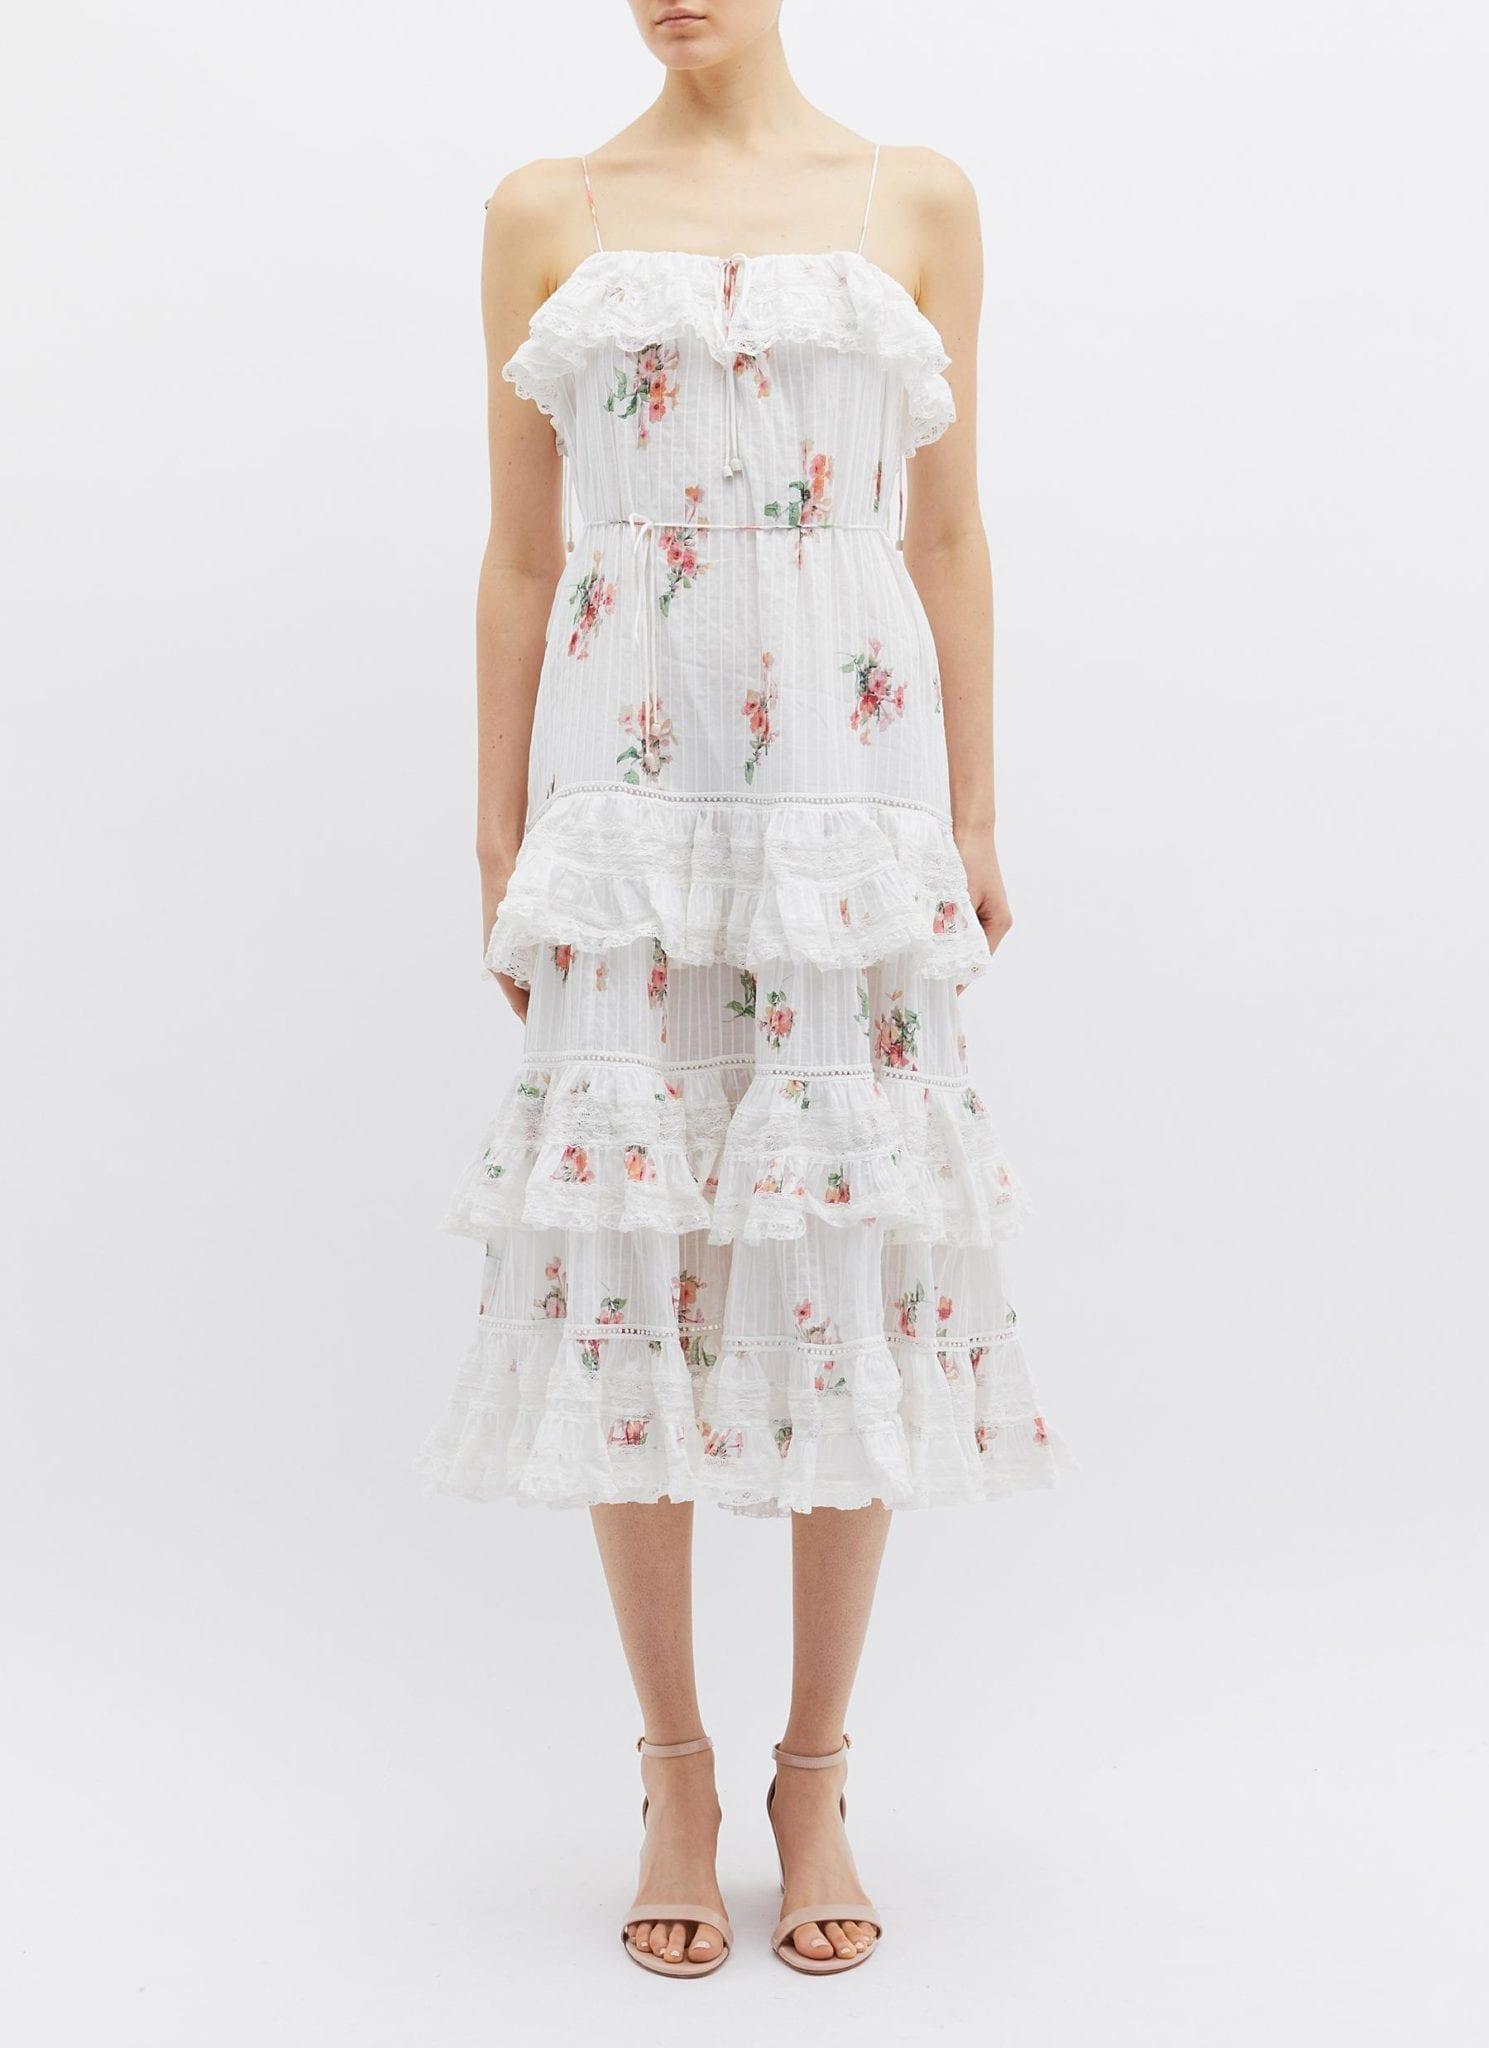 ZIMMERMANN 'Heathers' Floating Bouquet Print Tiered Ruffle Camisole White / Floral Printed Dress